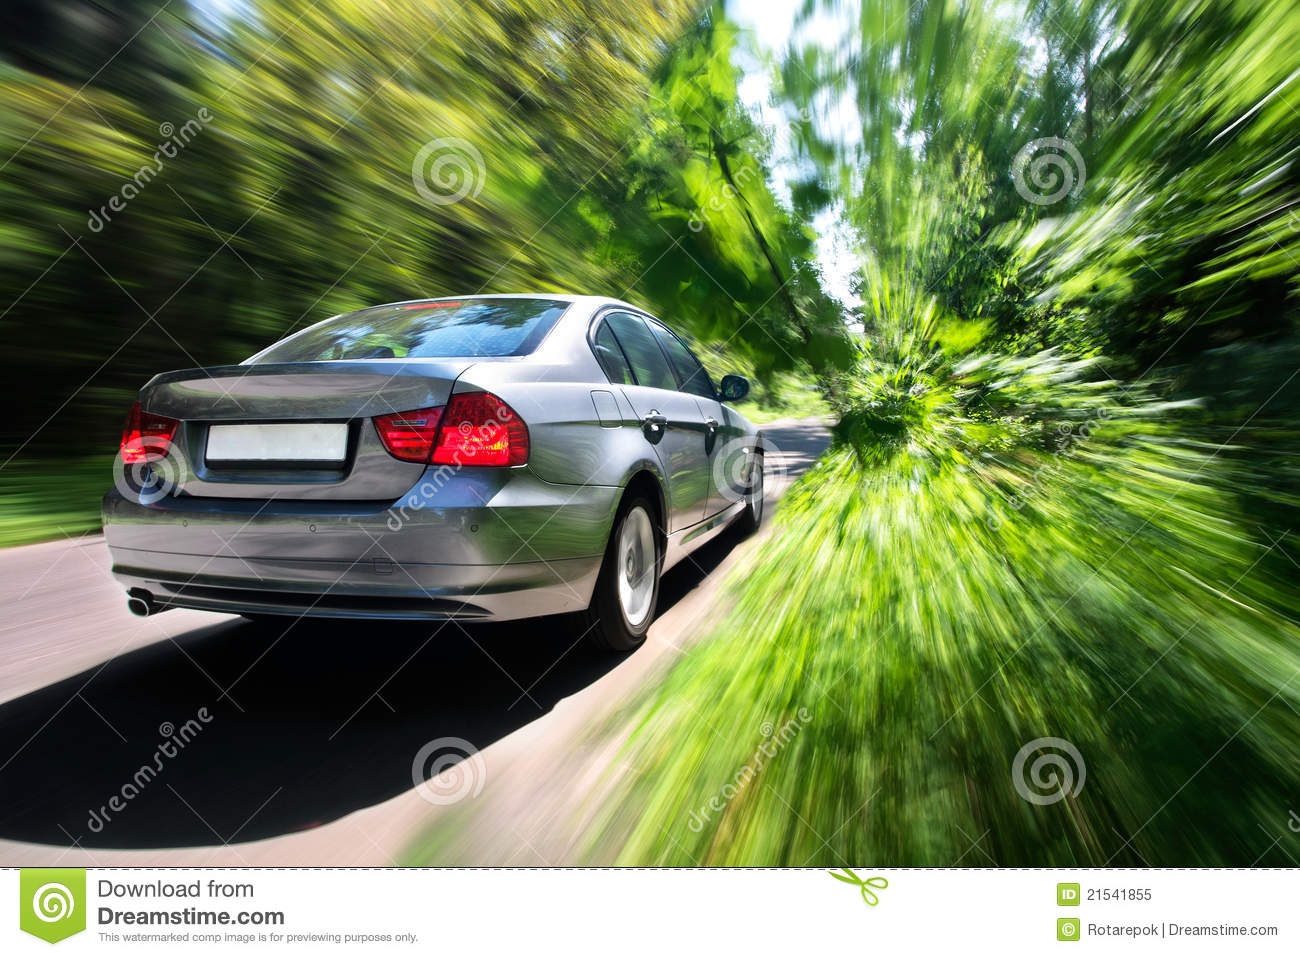 Fast Moving Car Stock Image. Image Of Countryside, Wheel